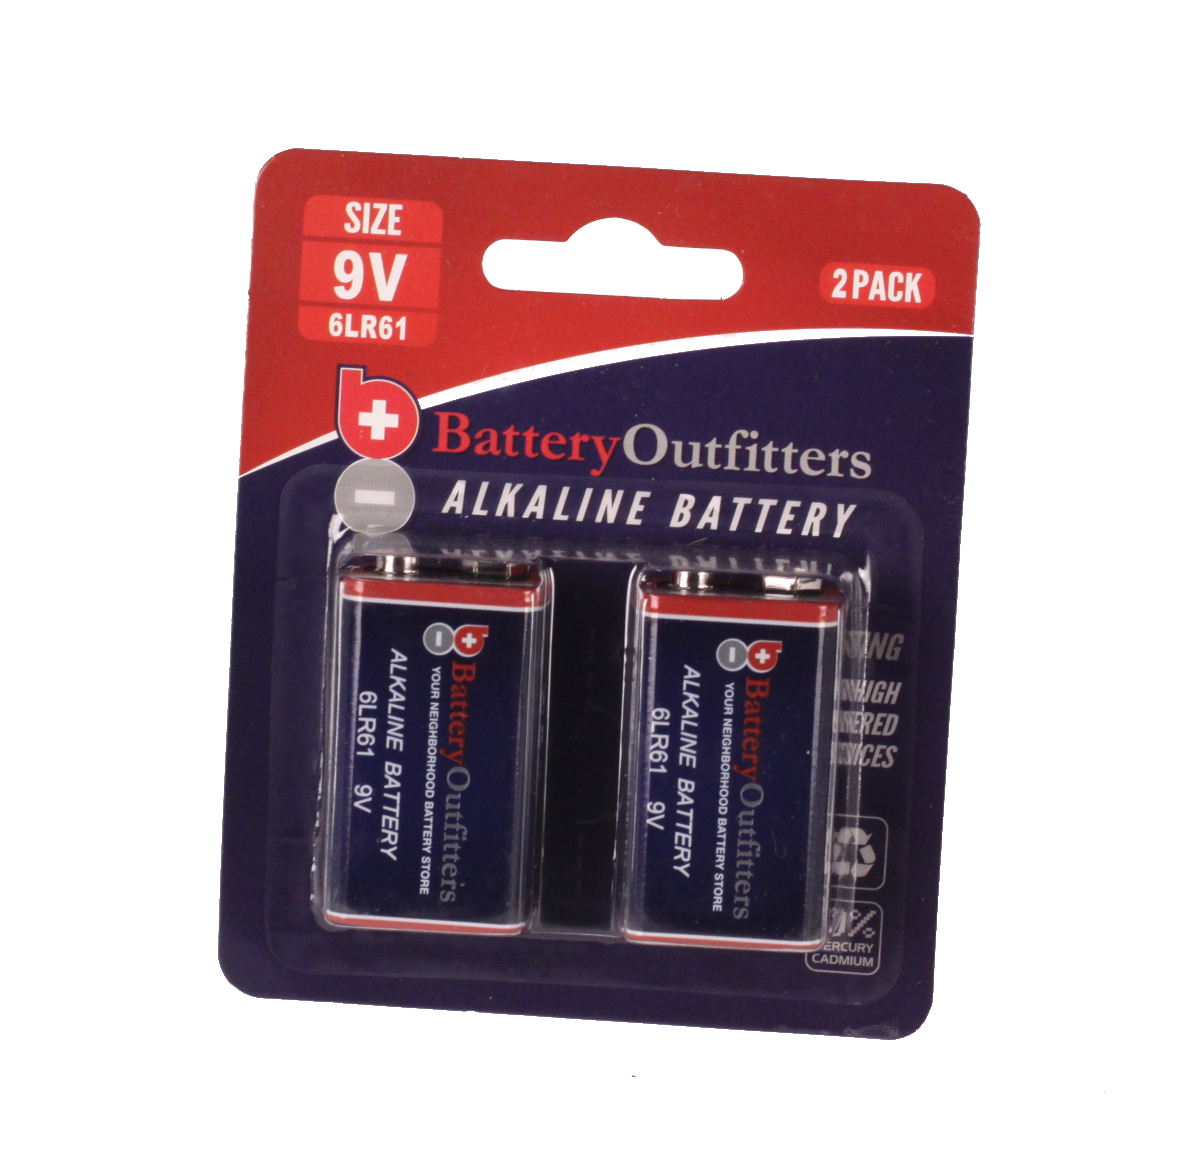 9V VALUE PACK 2 ALKALINE BATTERIES